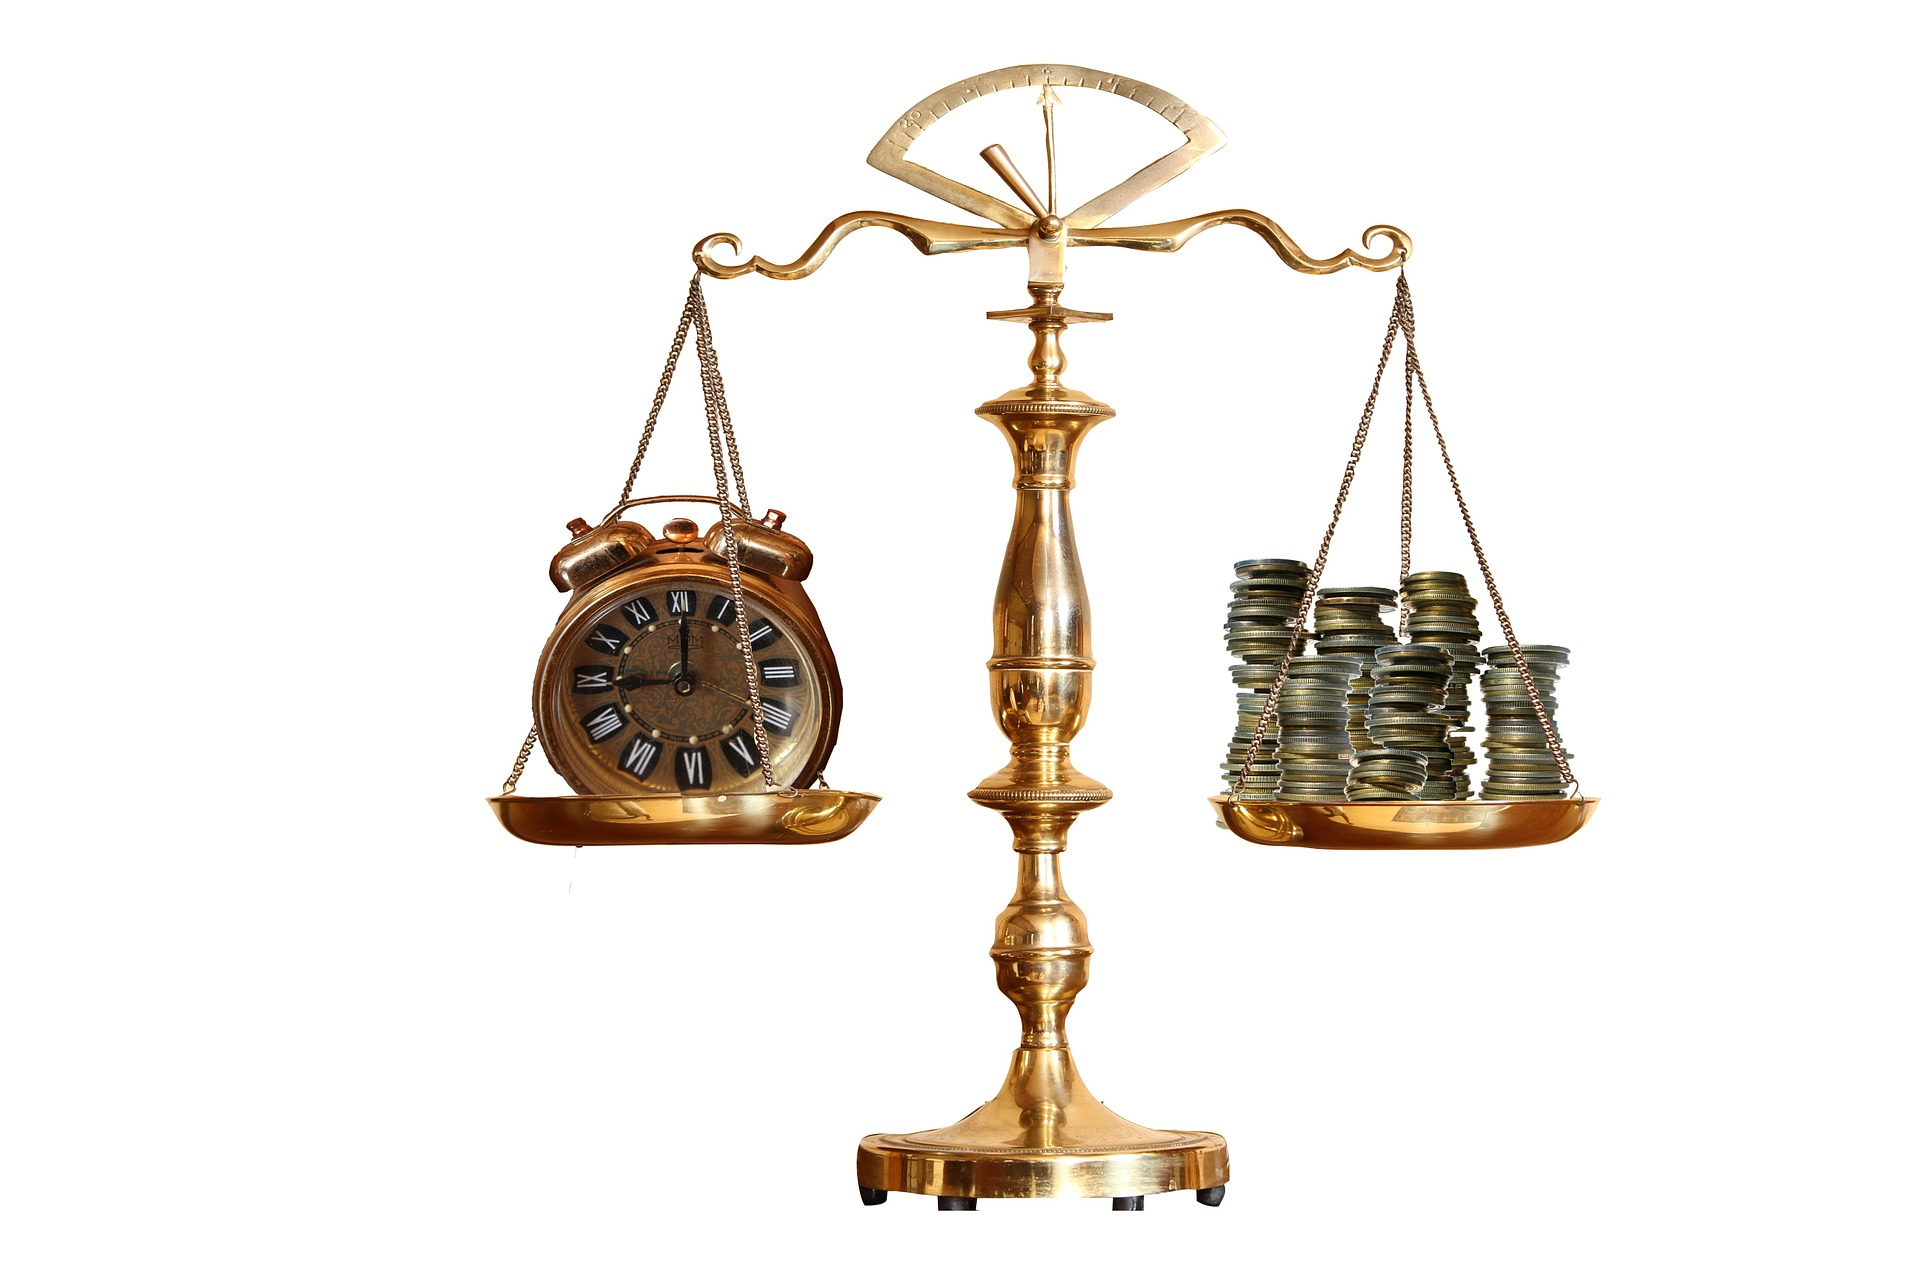 balance of justice image on workers' compensation lawyer blog